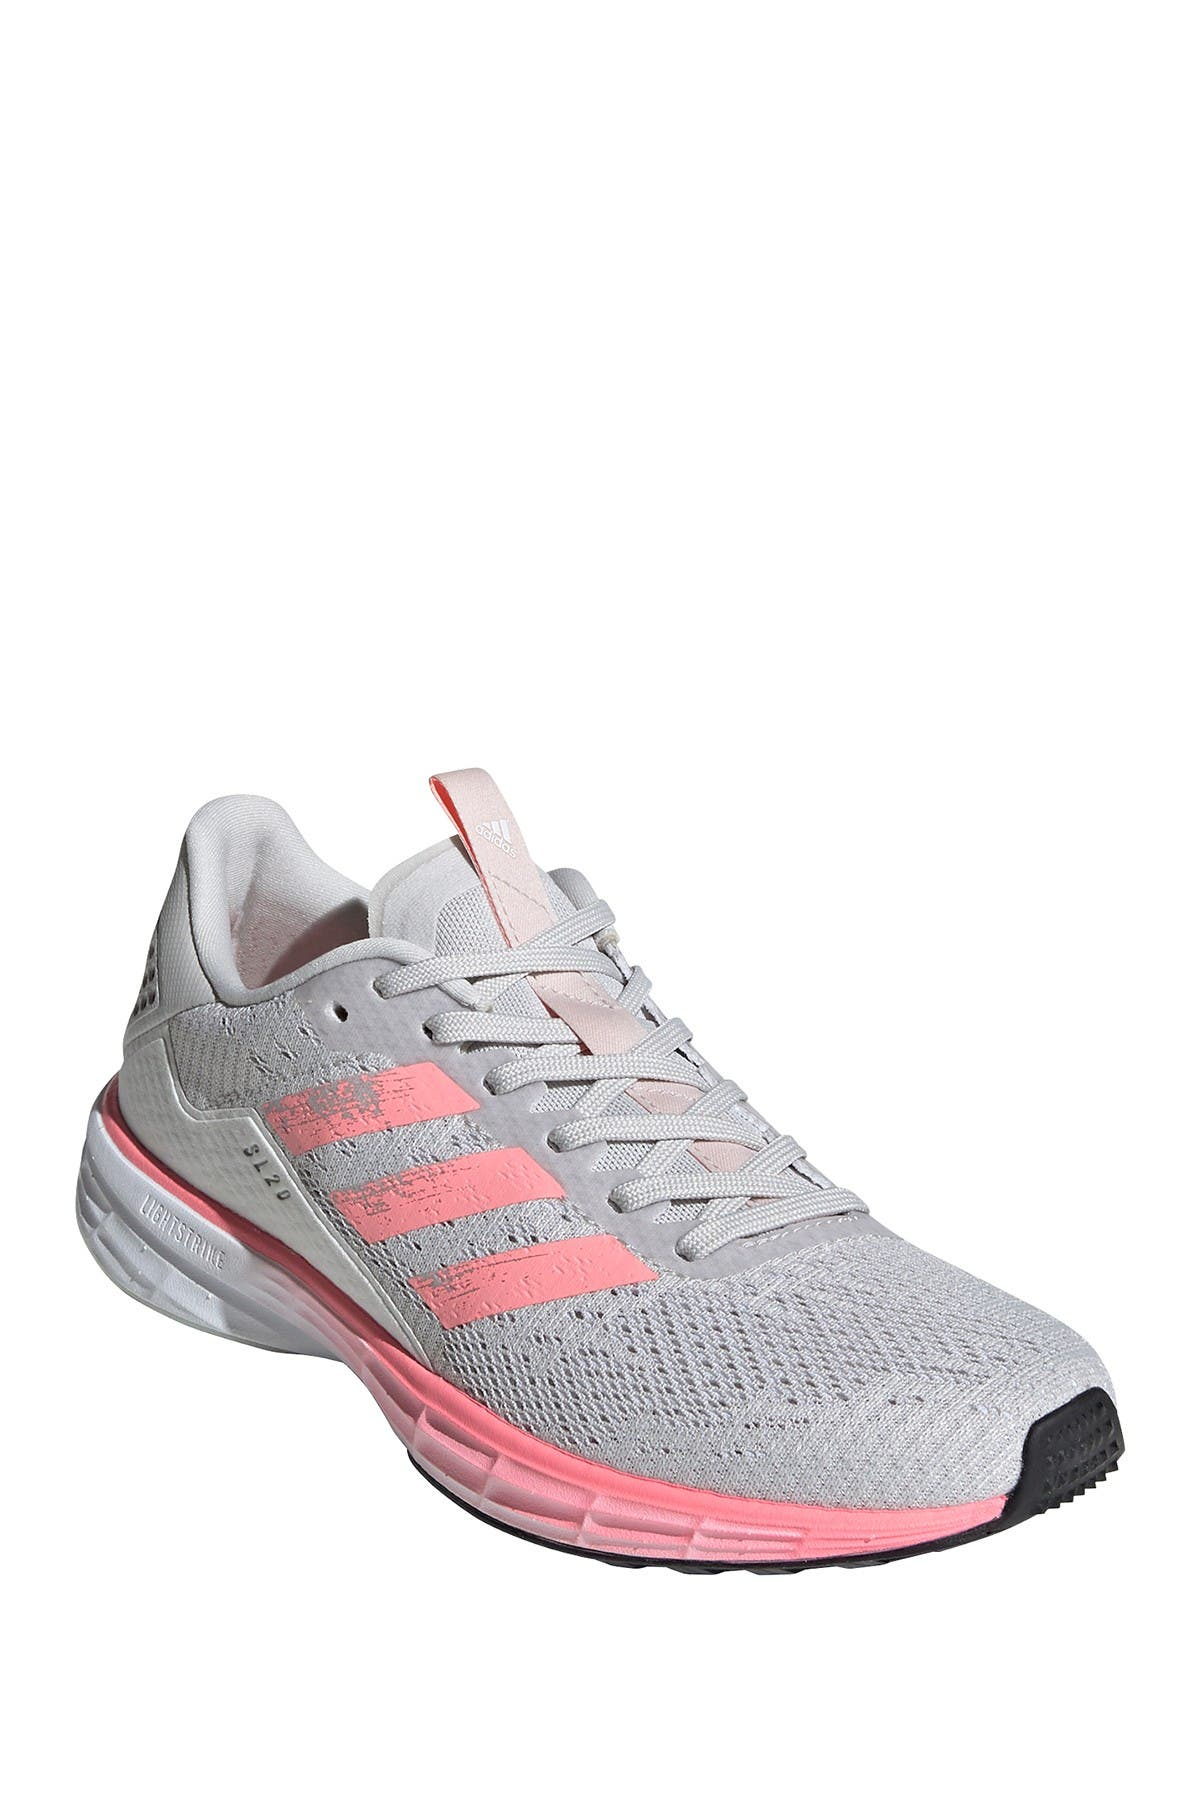 Image of adidas SL 20 Summer Ready Sneaker